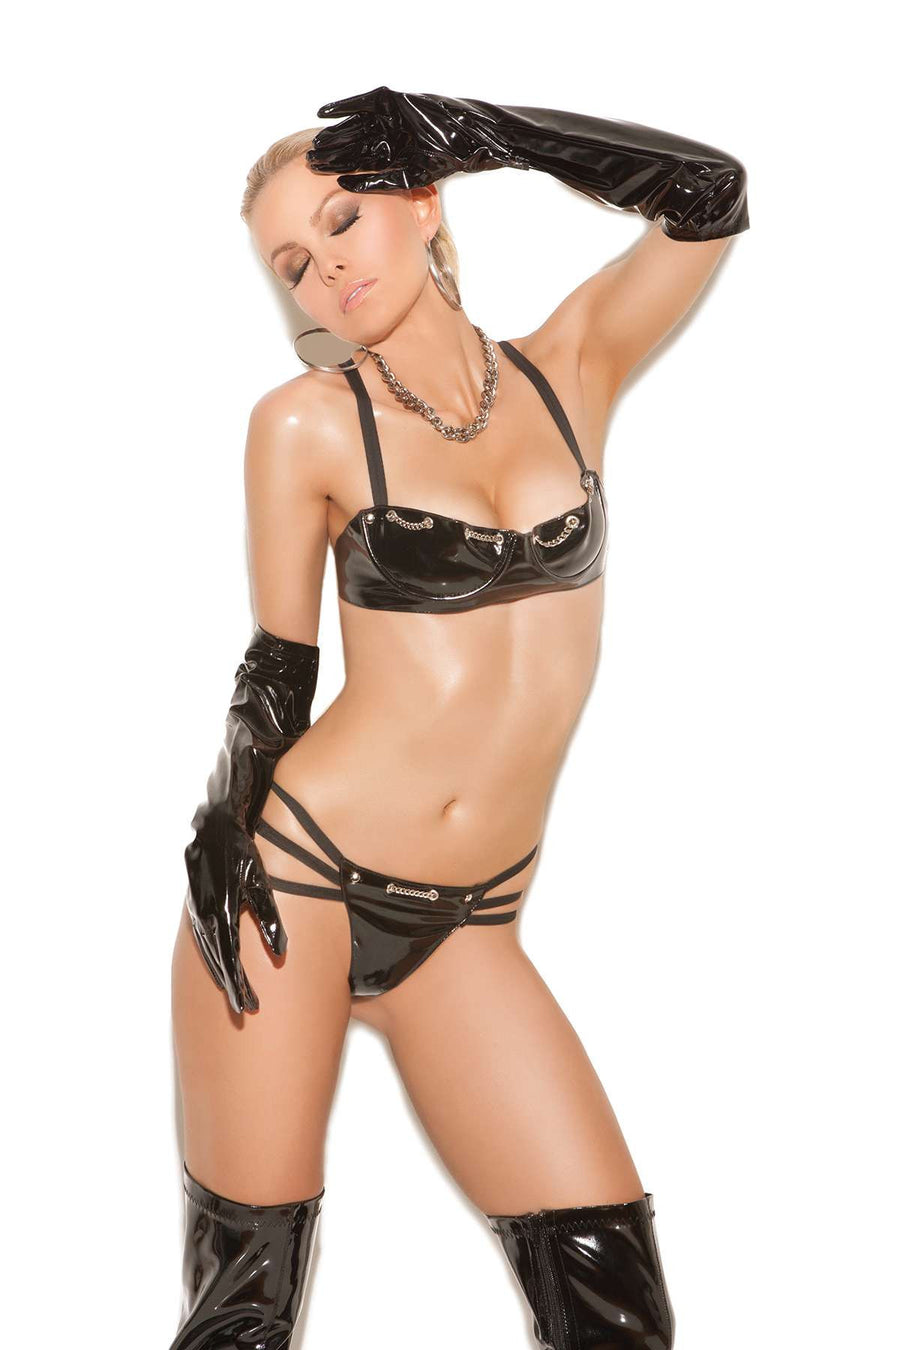 2 piece set Vinyl underwire bra with chain detail,  adjustable straps and back closure Matching  g-string with triple straps *Available Boxed Black